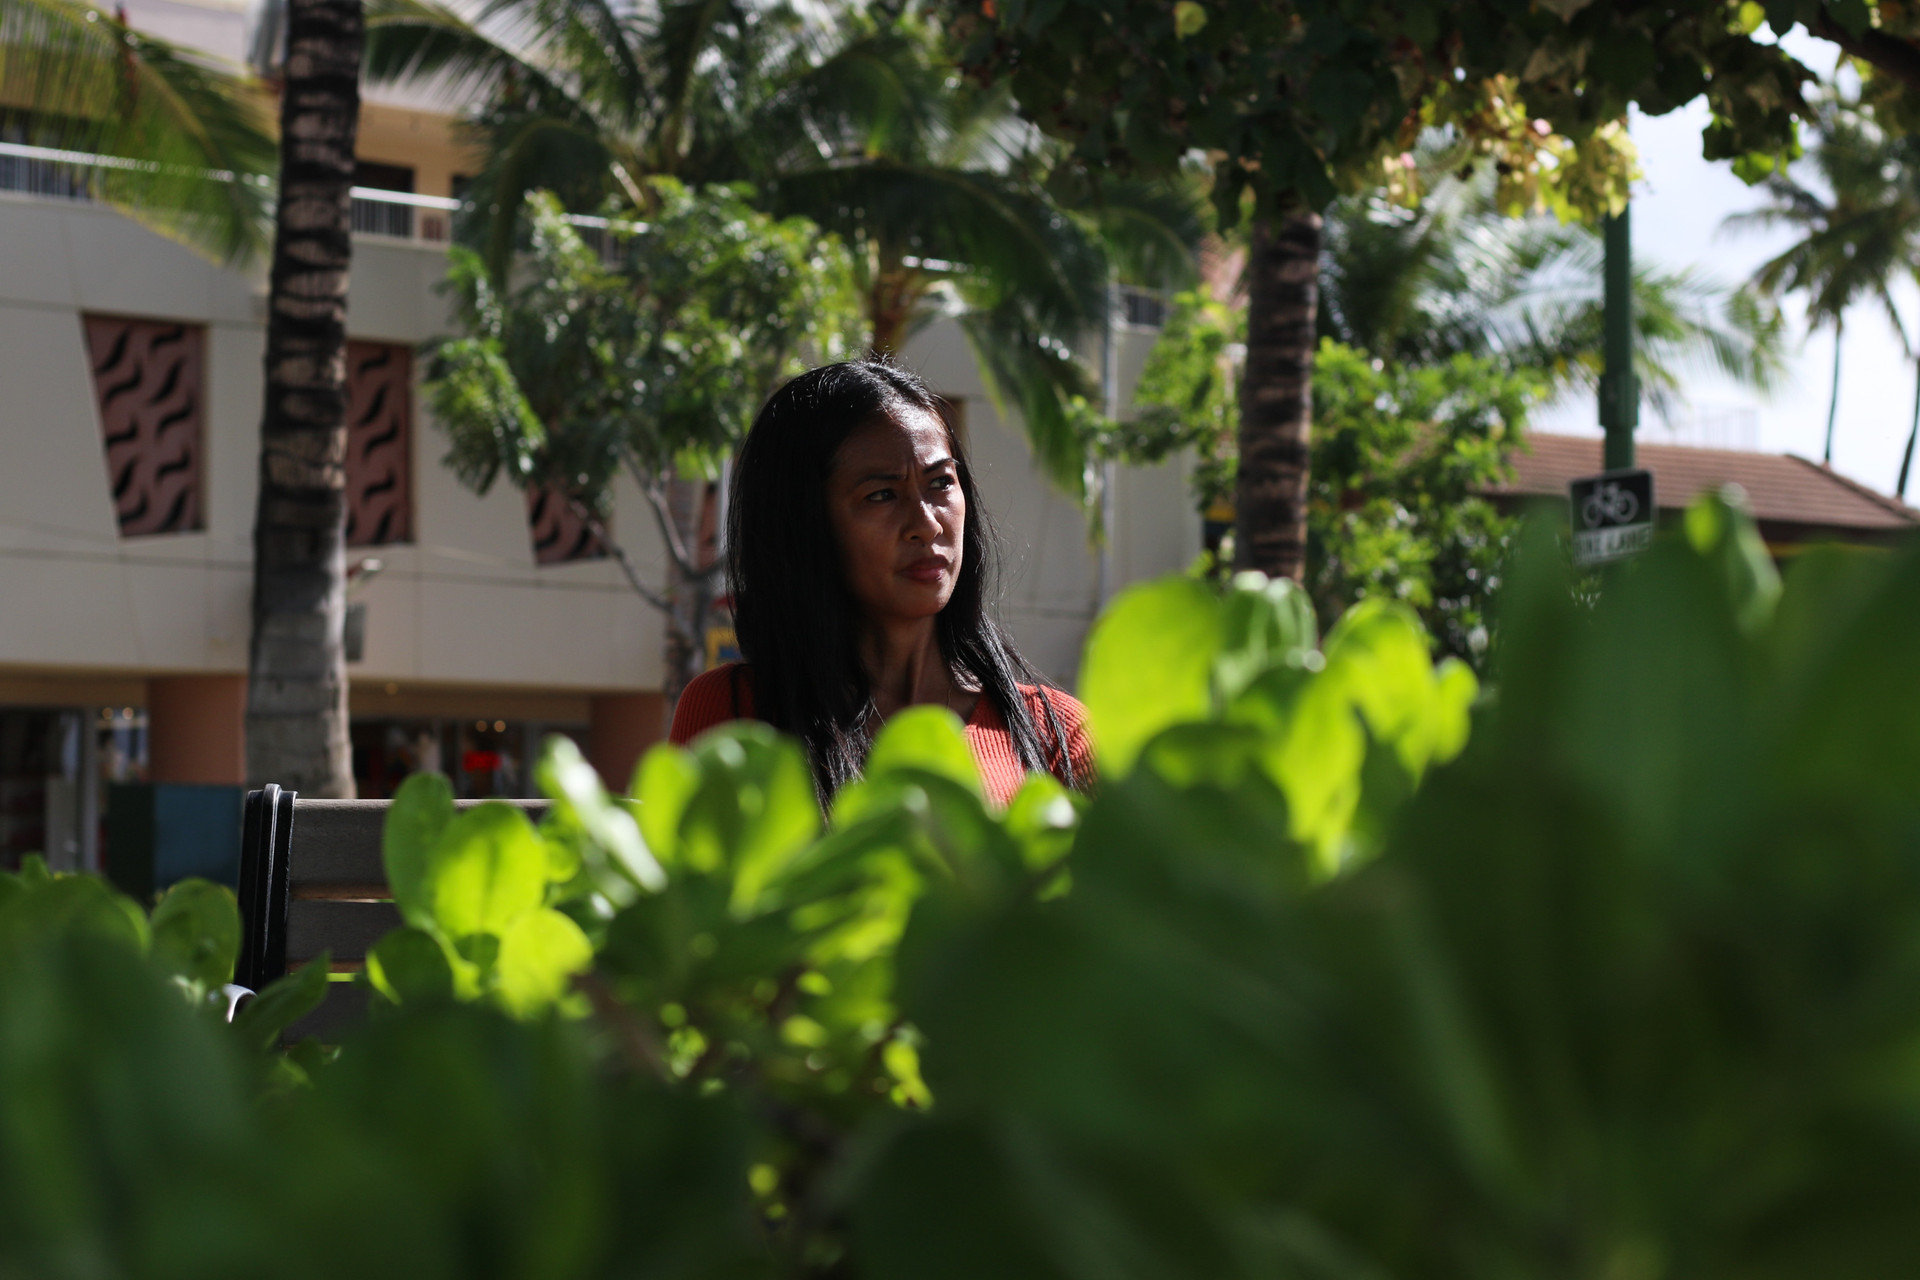 """I'm a little worried. I'm not sure if I can find a job later,"" said Abigail Dela Cruz, 36, an unemployed restaurant worker in Honolulu. It took her about six onths to get her unemplyment benefits. They came through September covering her rent and repaying her friends."